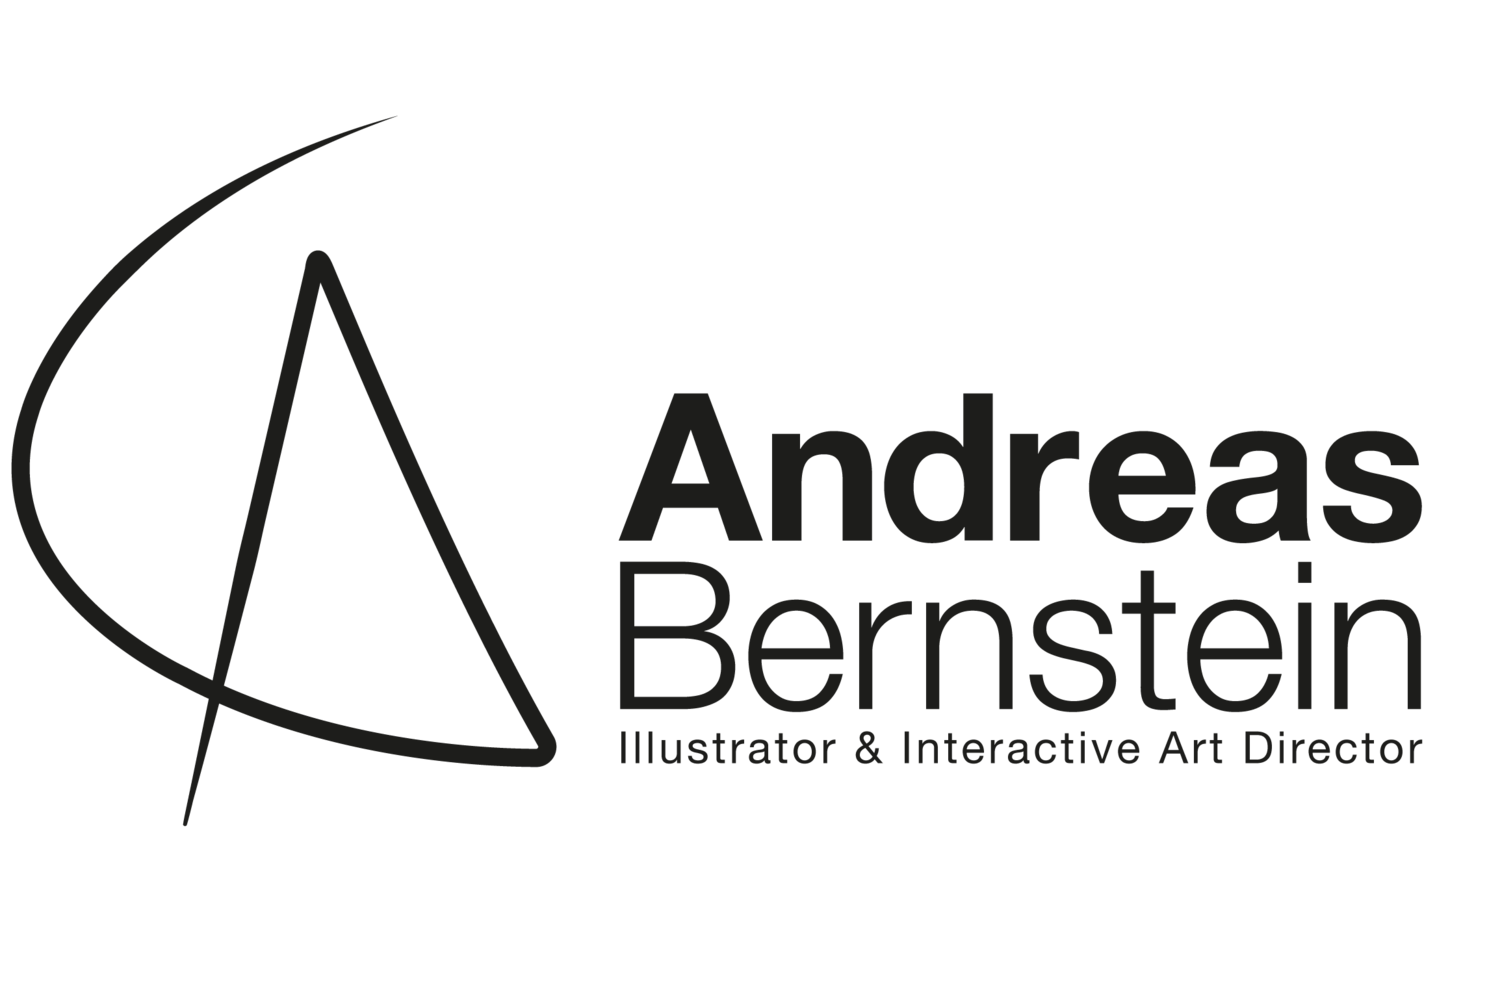 Andreas Illustration